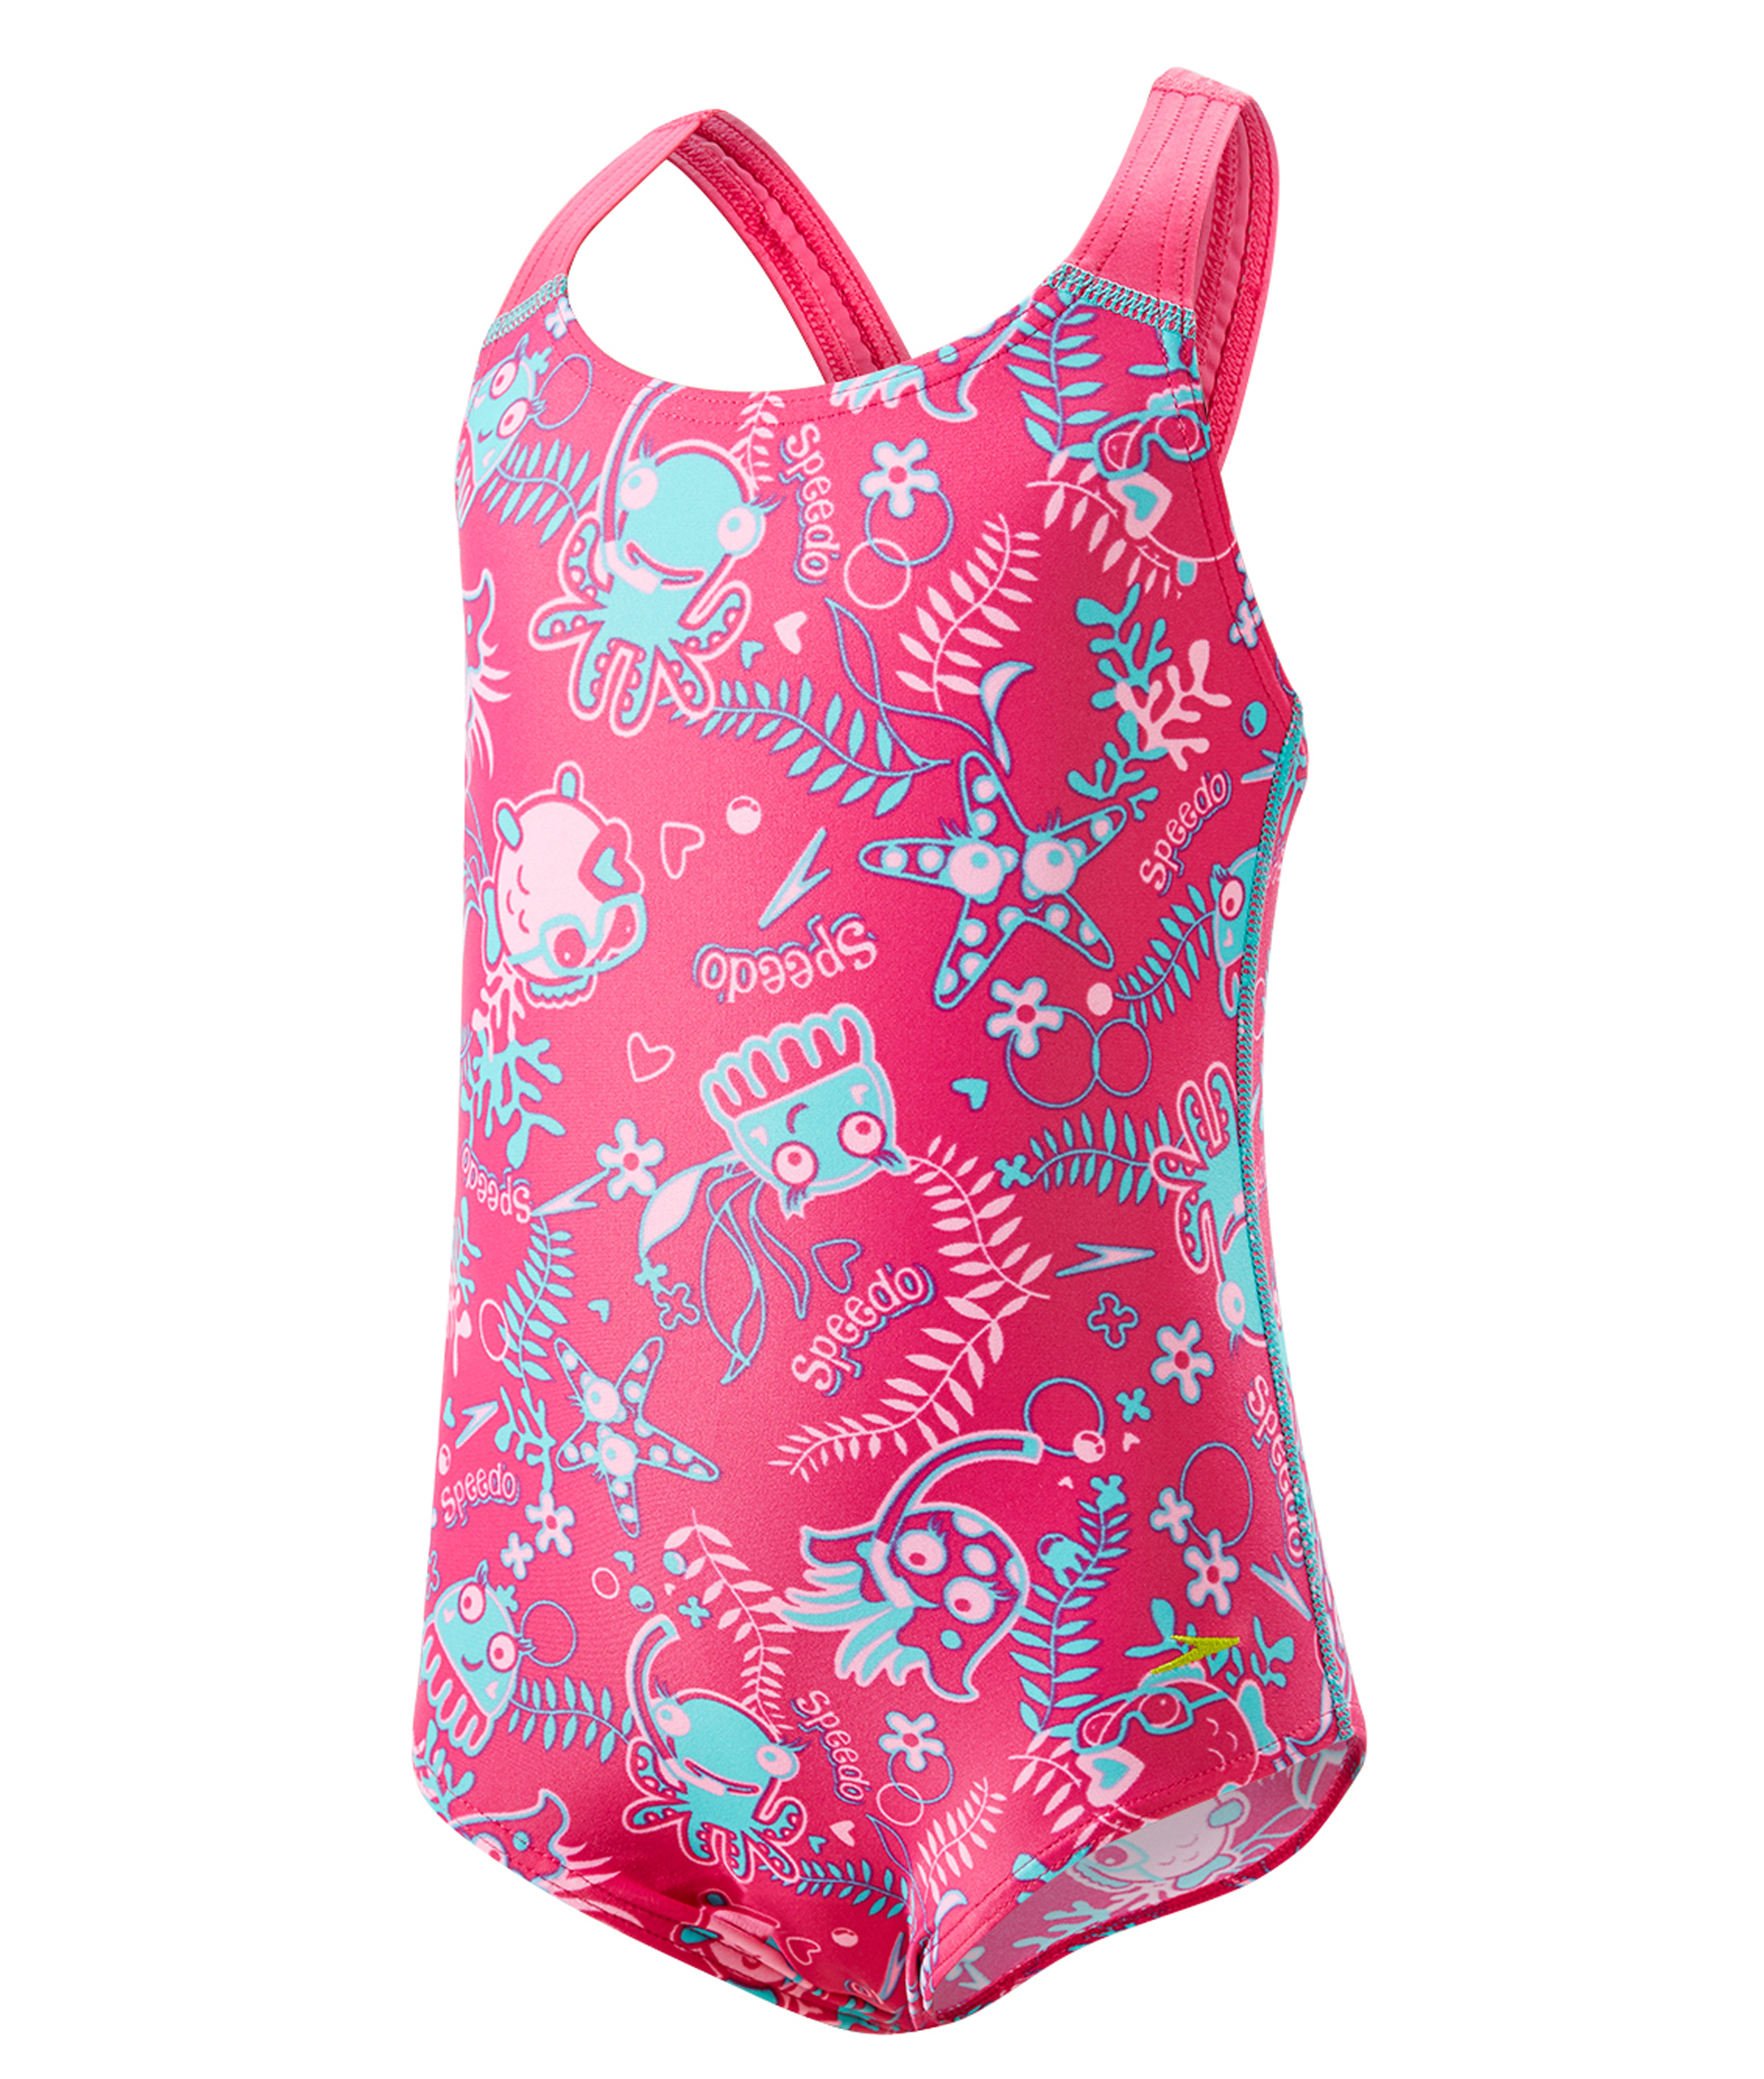 Speedo Seasquad Infant Girls Allover Swimsuit - Pink